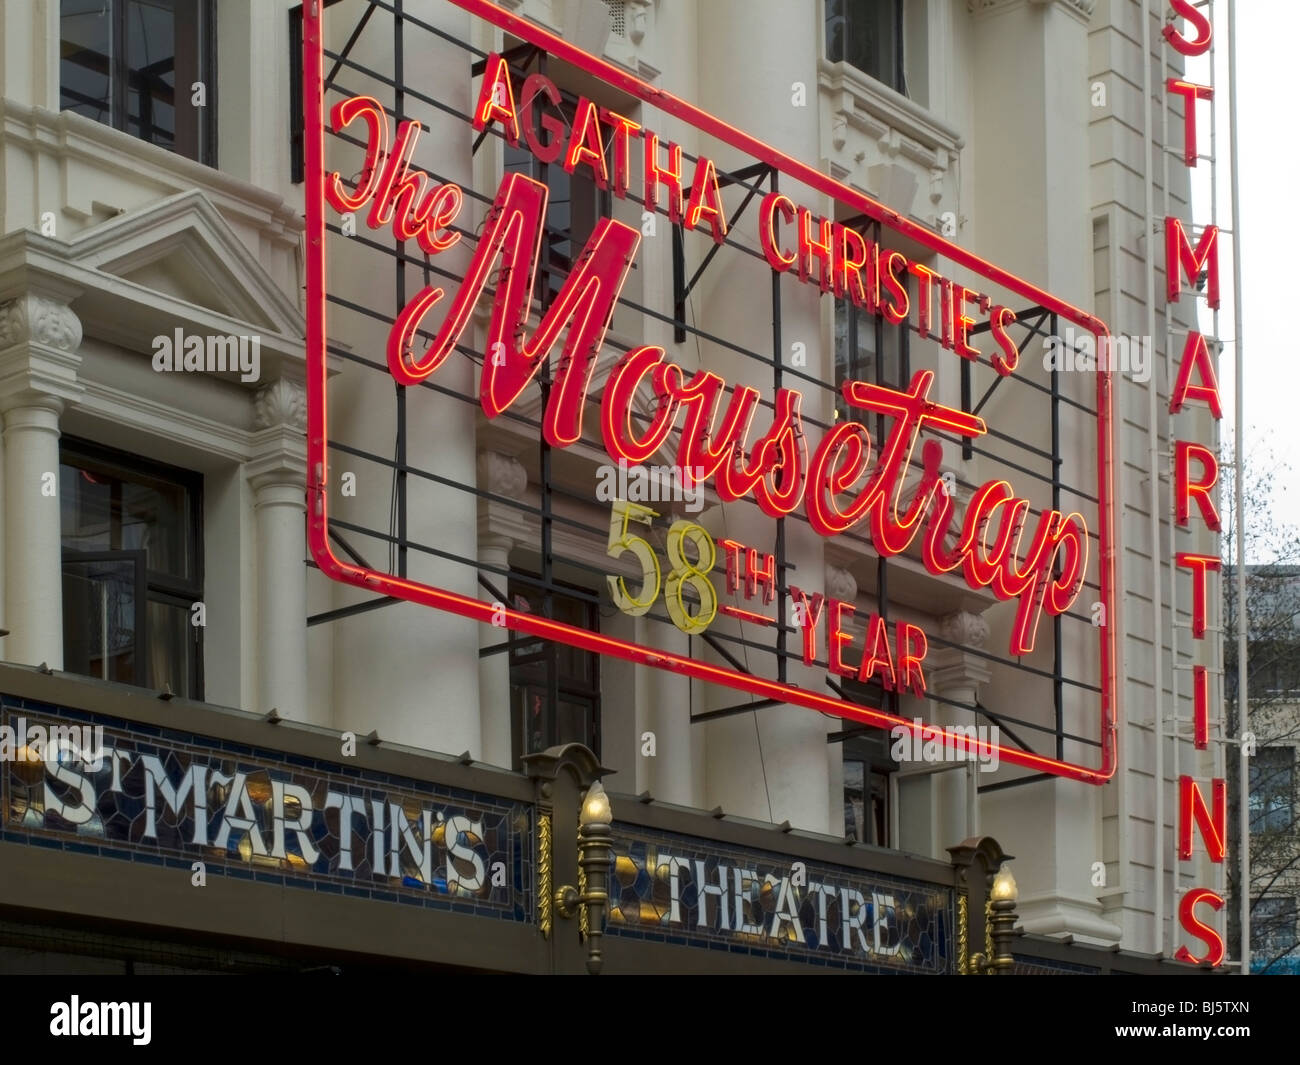 Agatha Christies The Mouse Trap at St Martin's Theatre 58th year - Stock Image